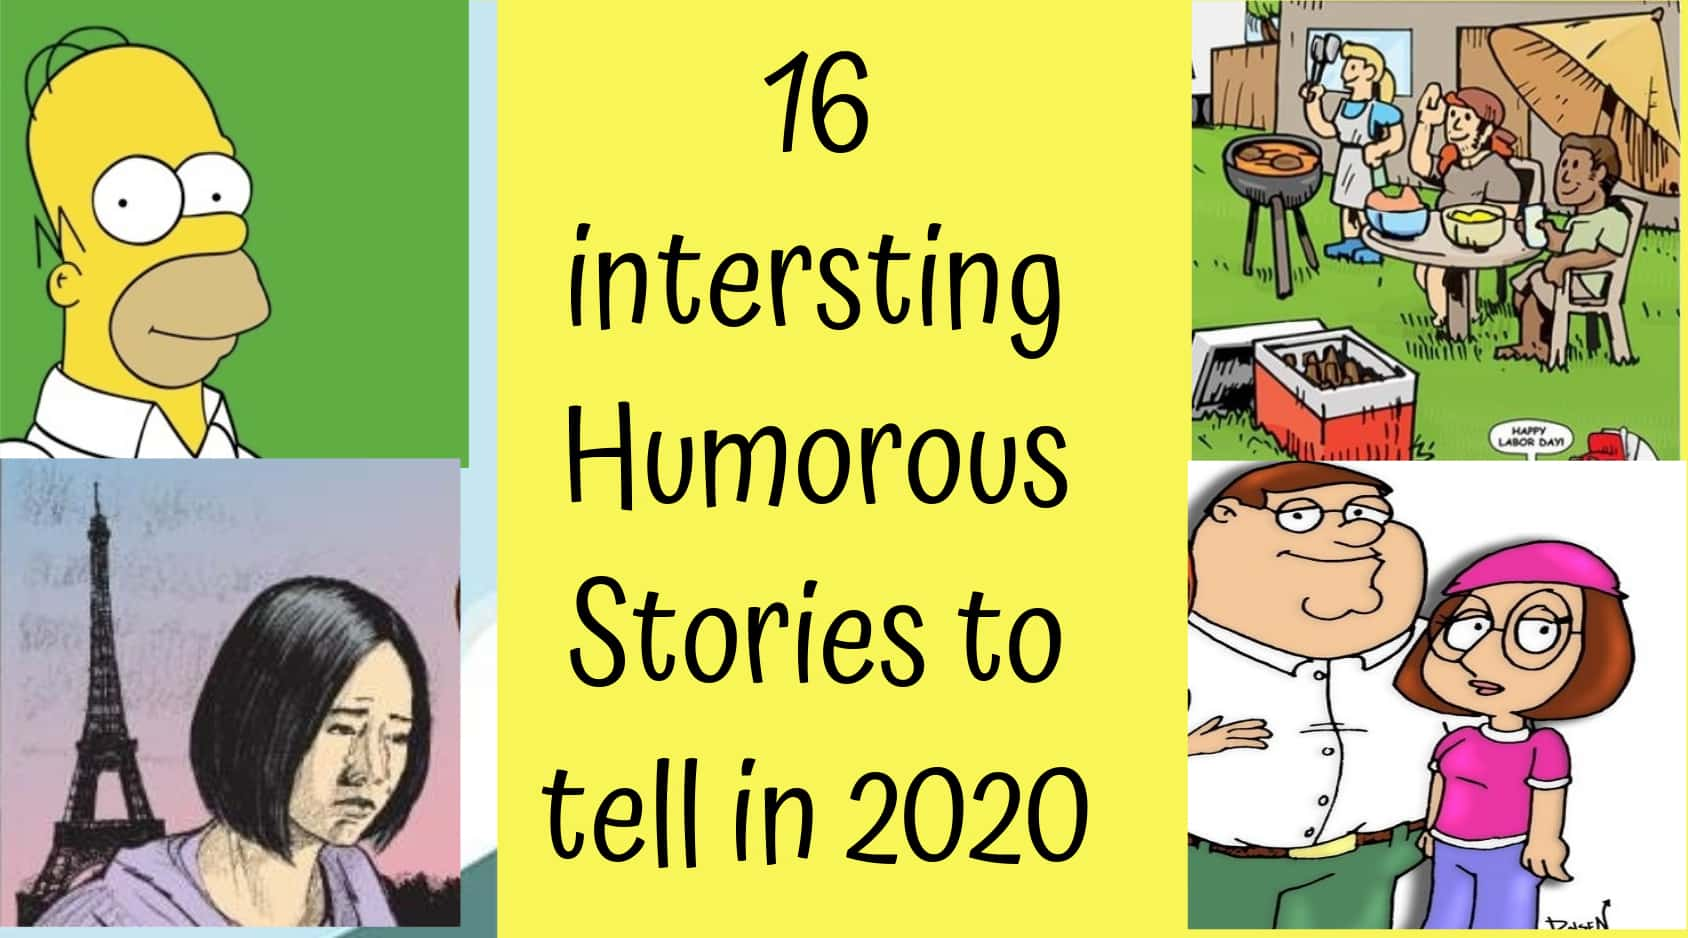 humorous short stories with moral, Language Skills Abroad